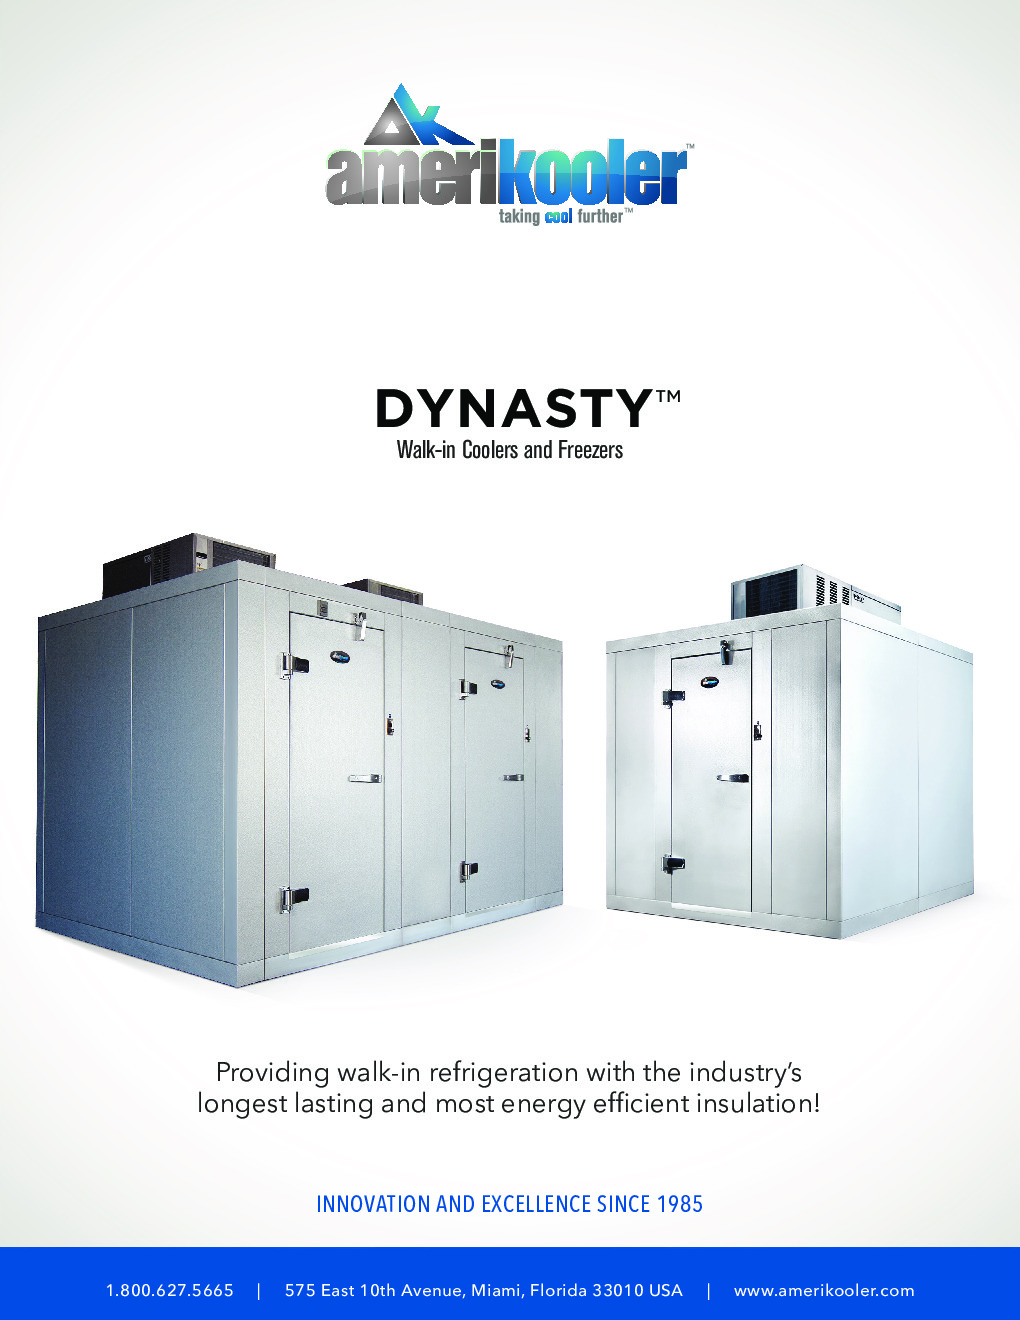 AmeriKooler DW071377N-4/9-RM 7' X 13' Walk-In Cooler, 9' L Cooler without Floor and 4' L Freezer, Remote